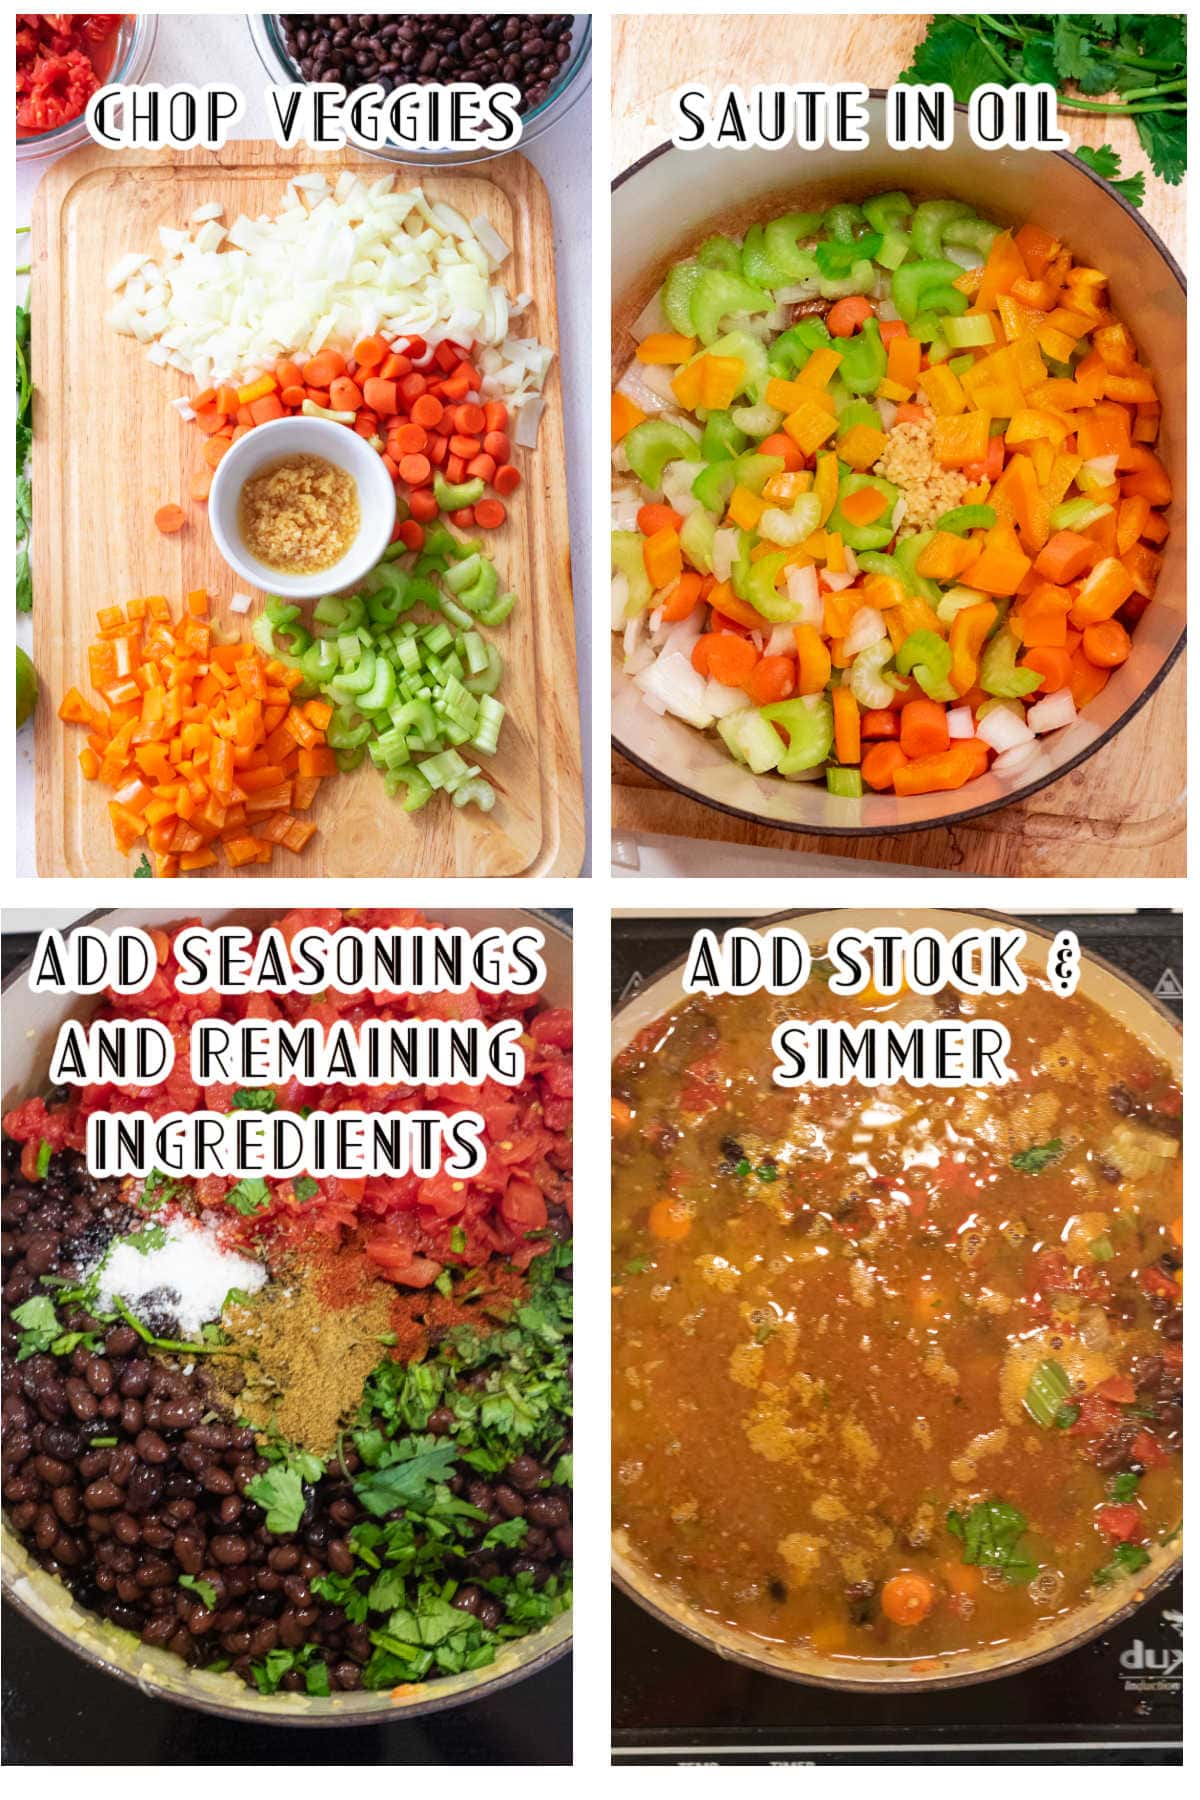 Step by step images showing how to make black bean soup.